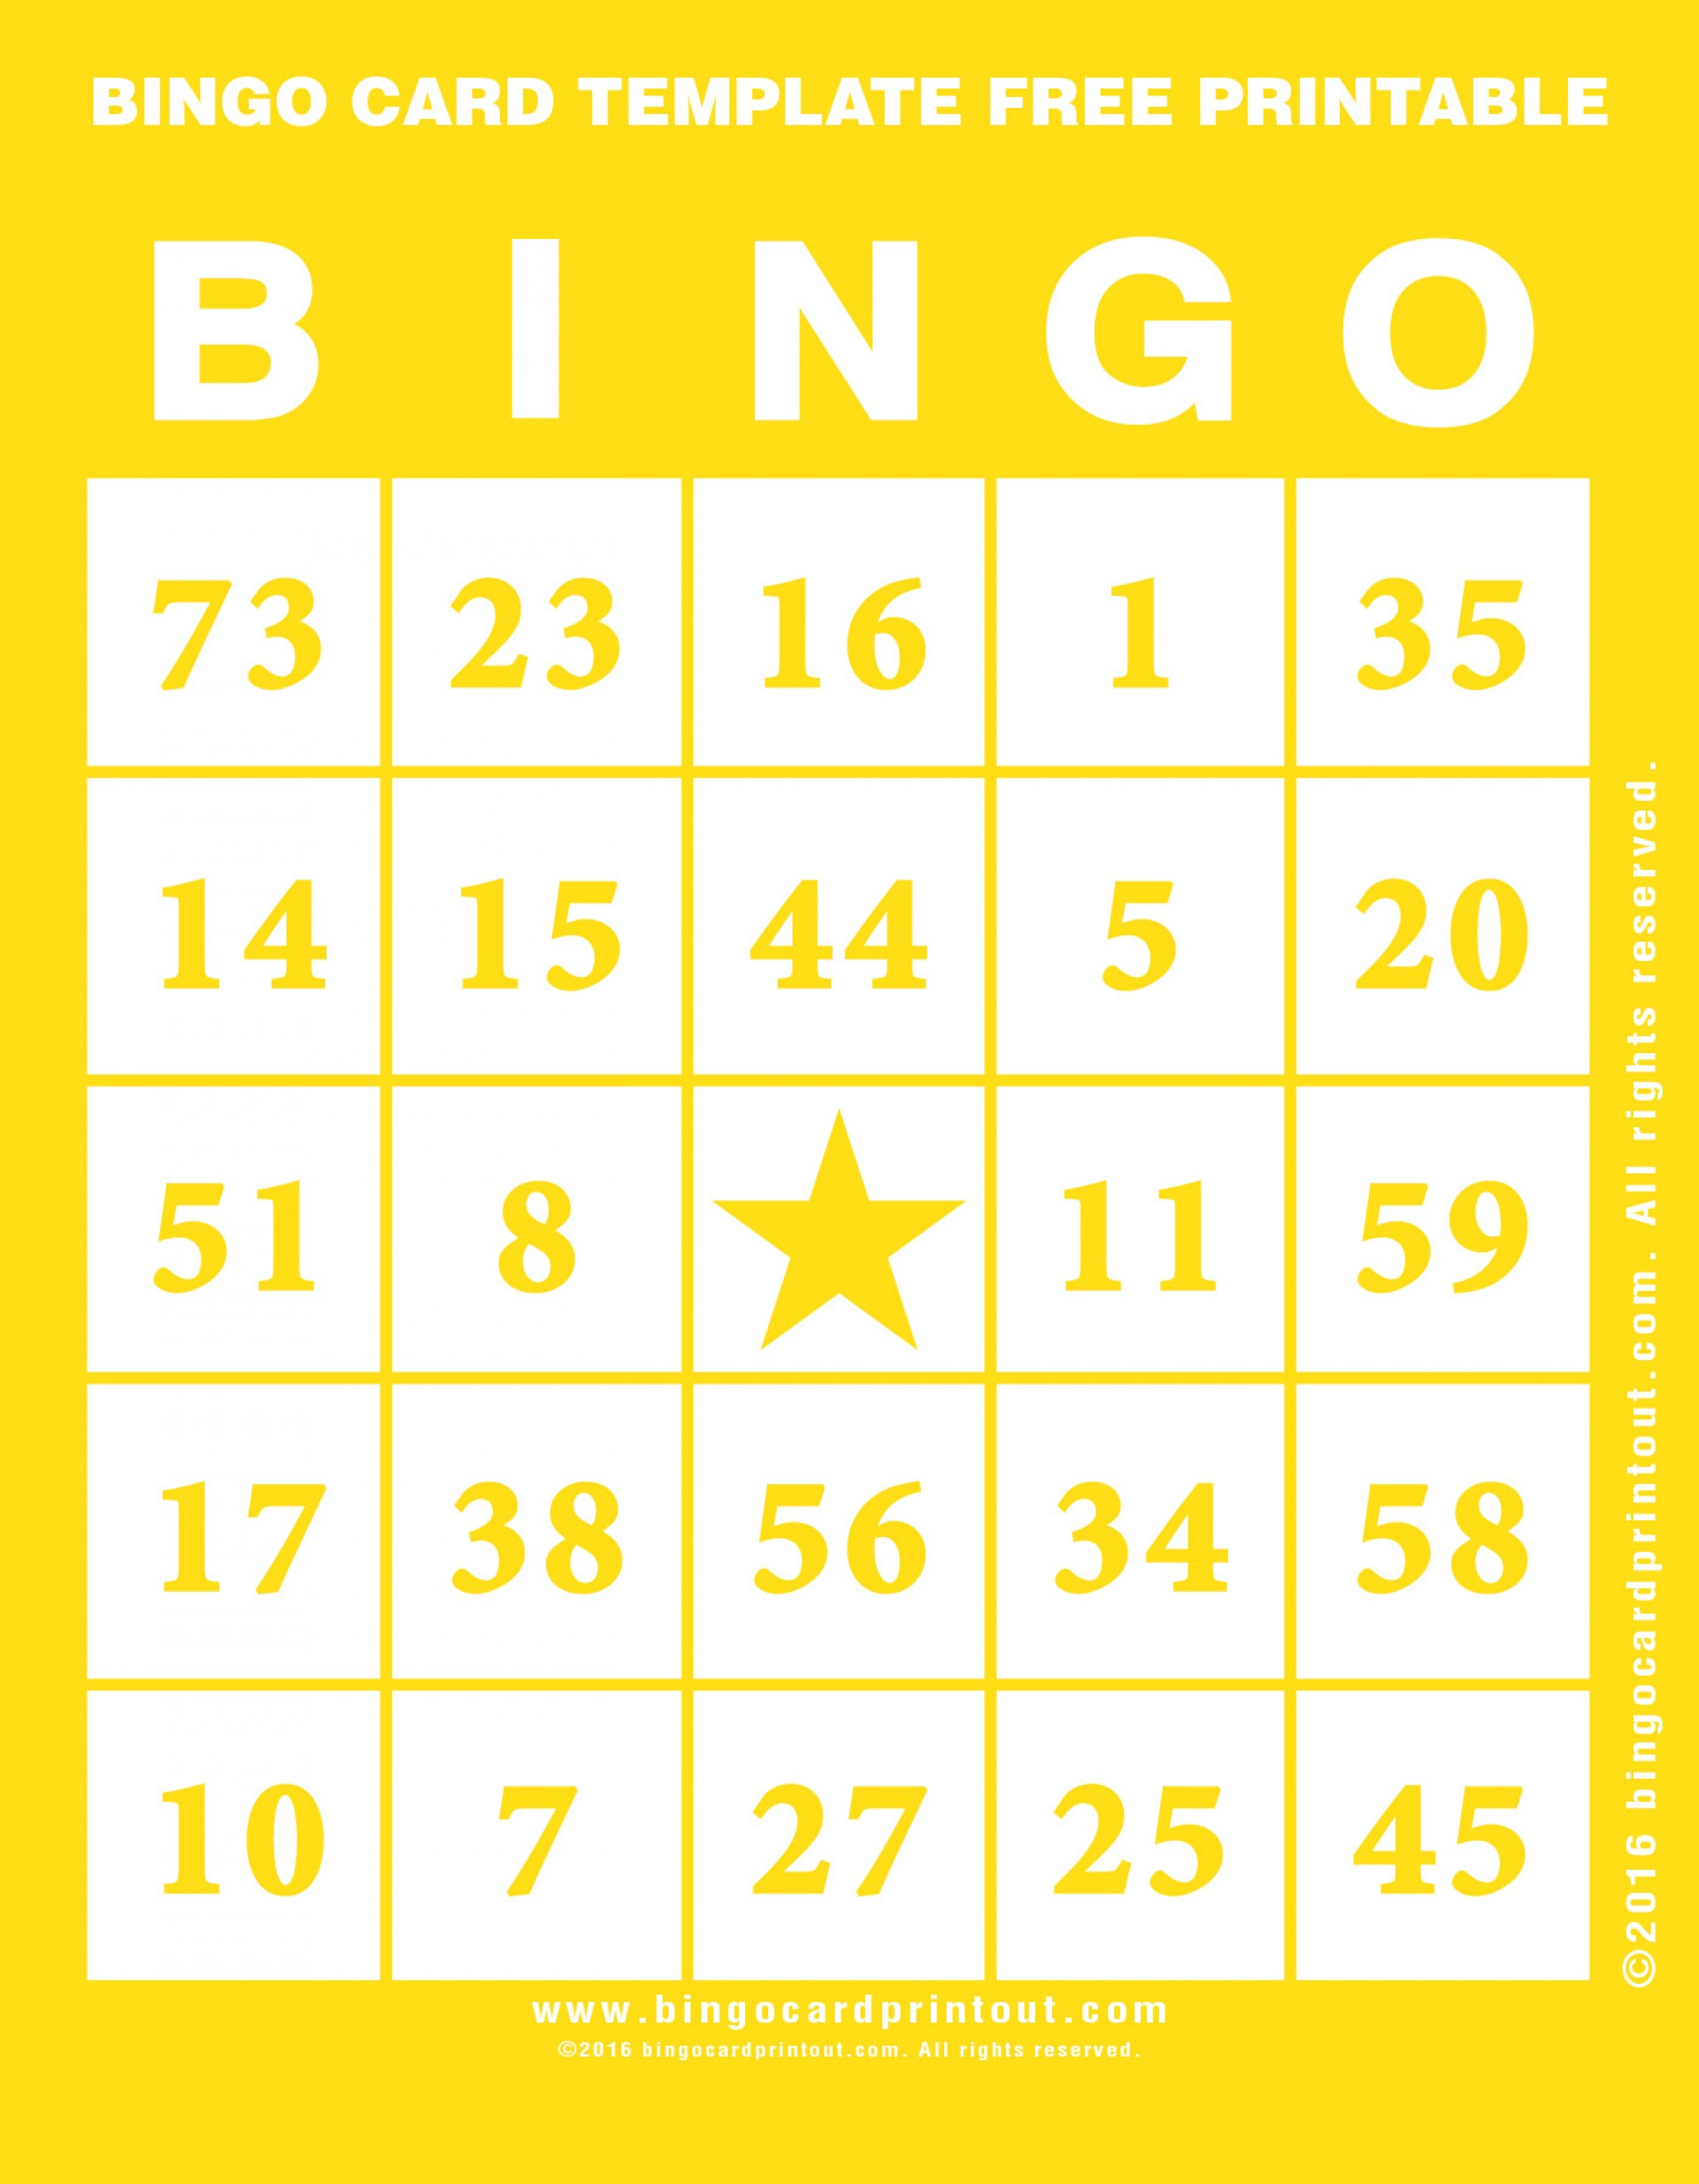 010 Bingo Card Template Free Printable ~ Ulyssesroom - Free Printable Bingo Cards For Teachers